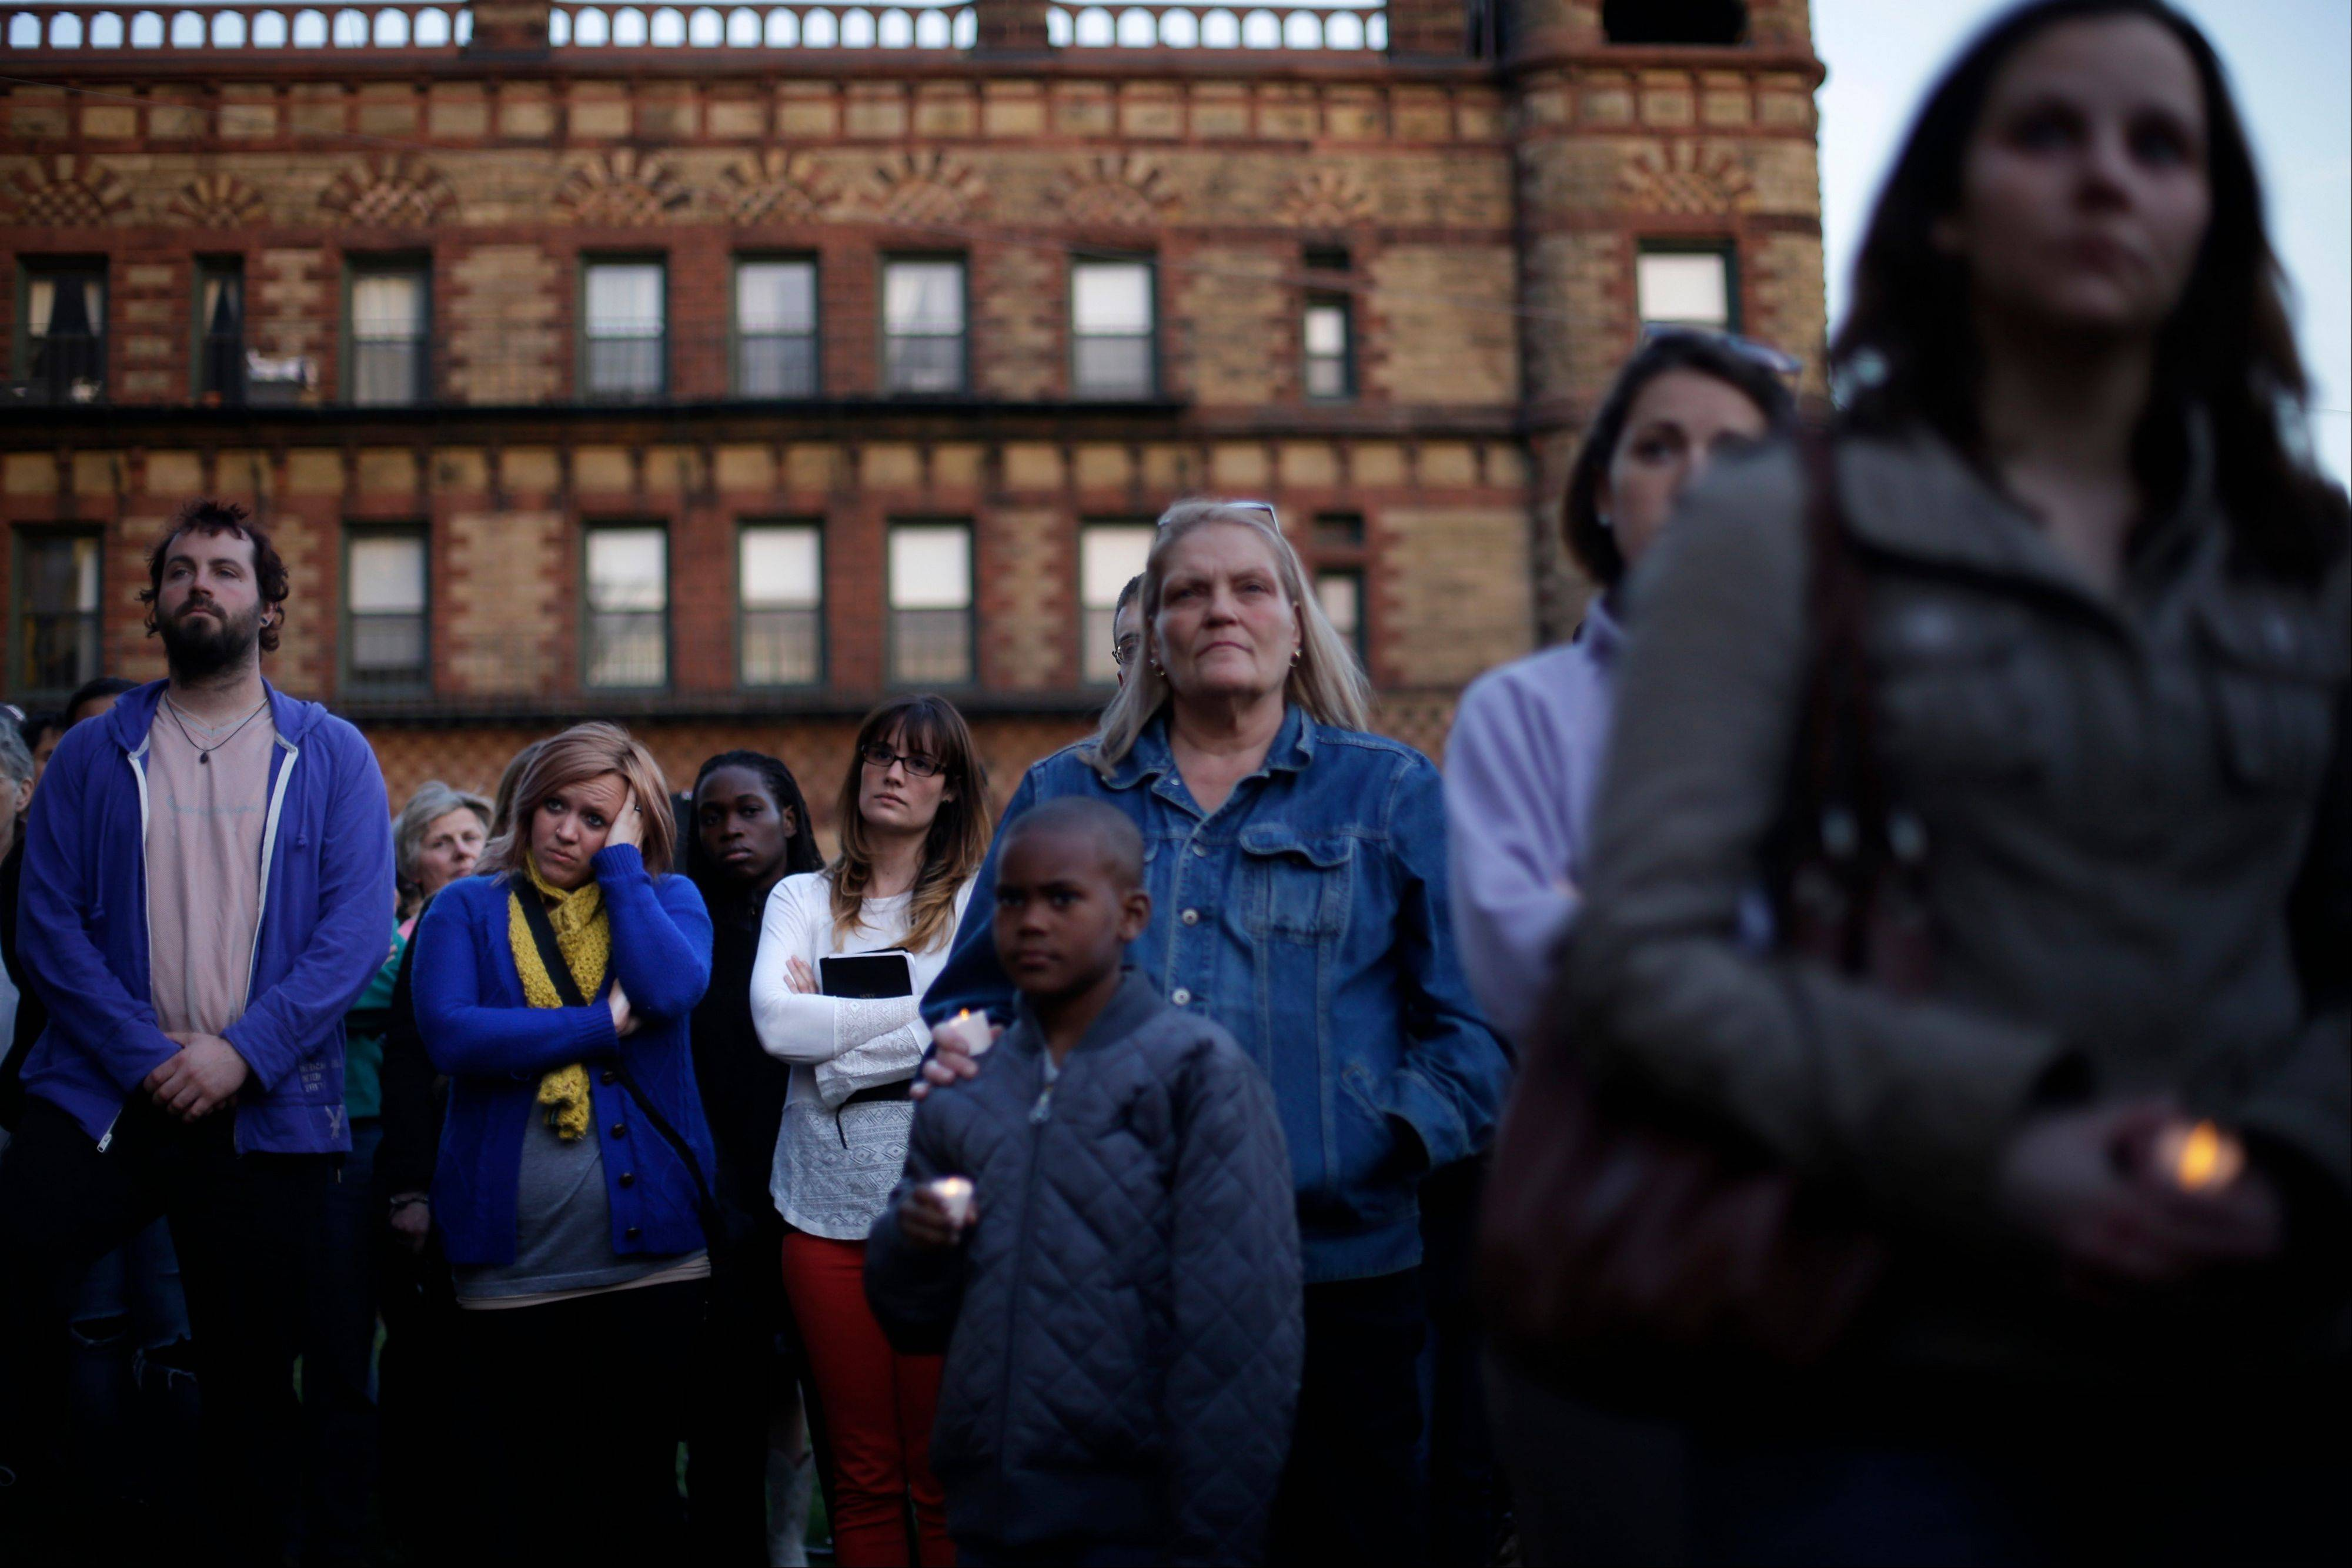 Mourners attend a candlelight vigil at Wednesday at city hall in Cambridge, Mass., in the aftermath of Monday's Boston Marathon explosions, which killed at least three and injured more than 140. .